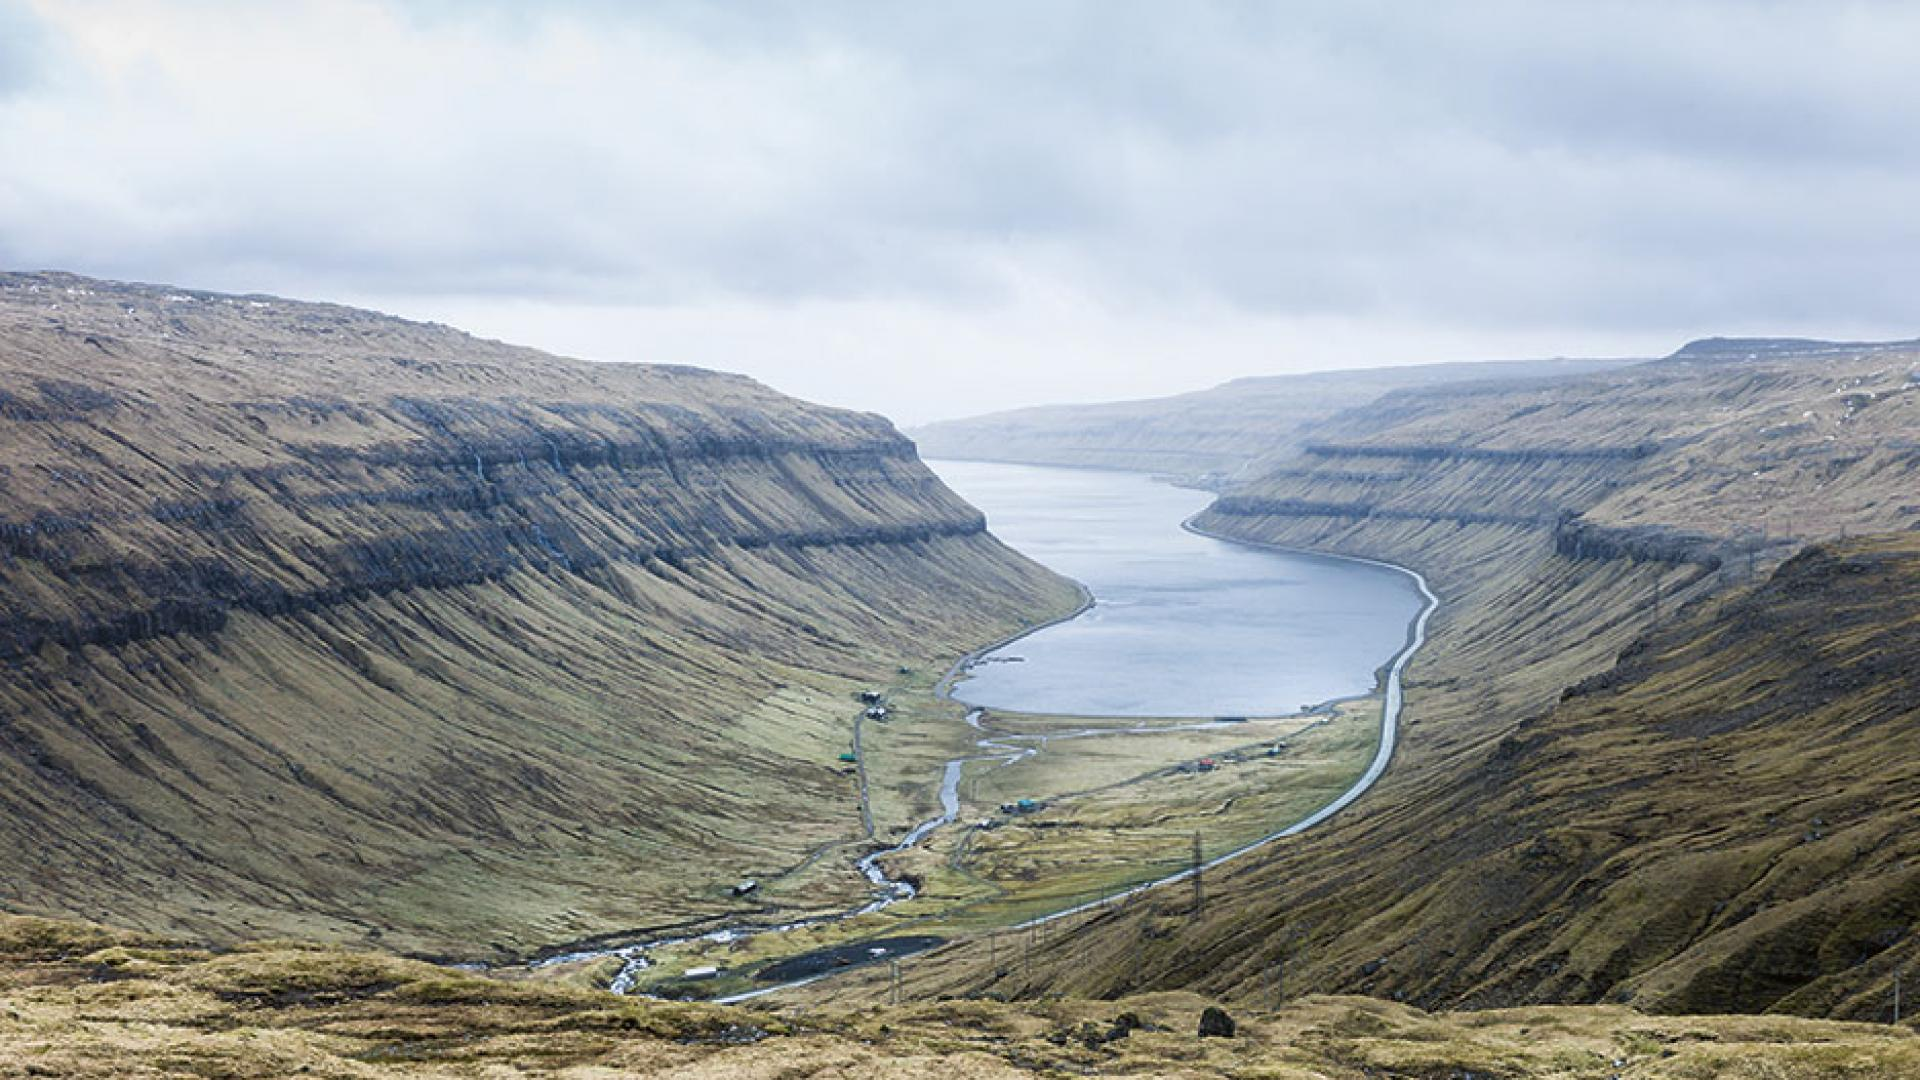 A fjord in the Faroe Islands